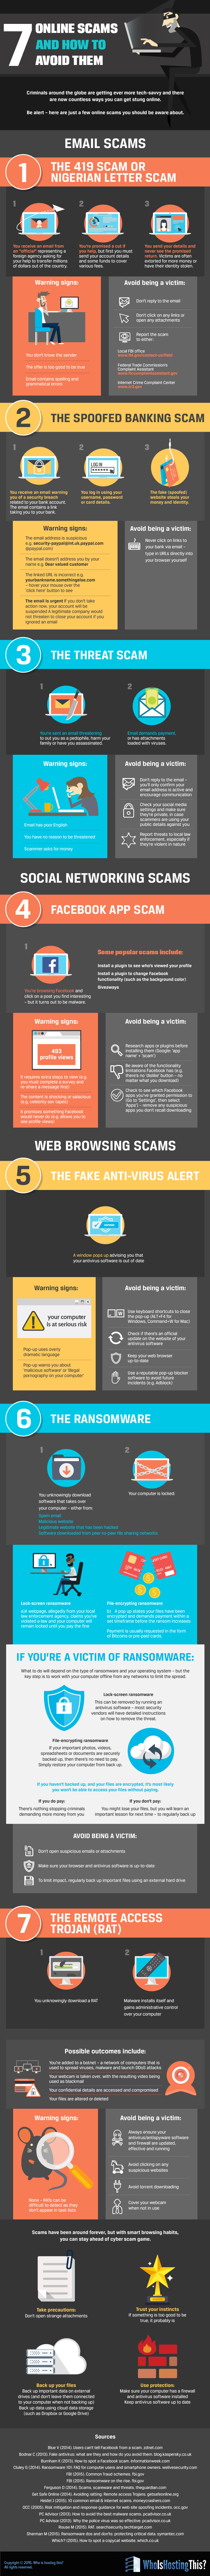 online scam infographic